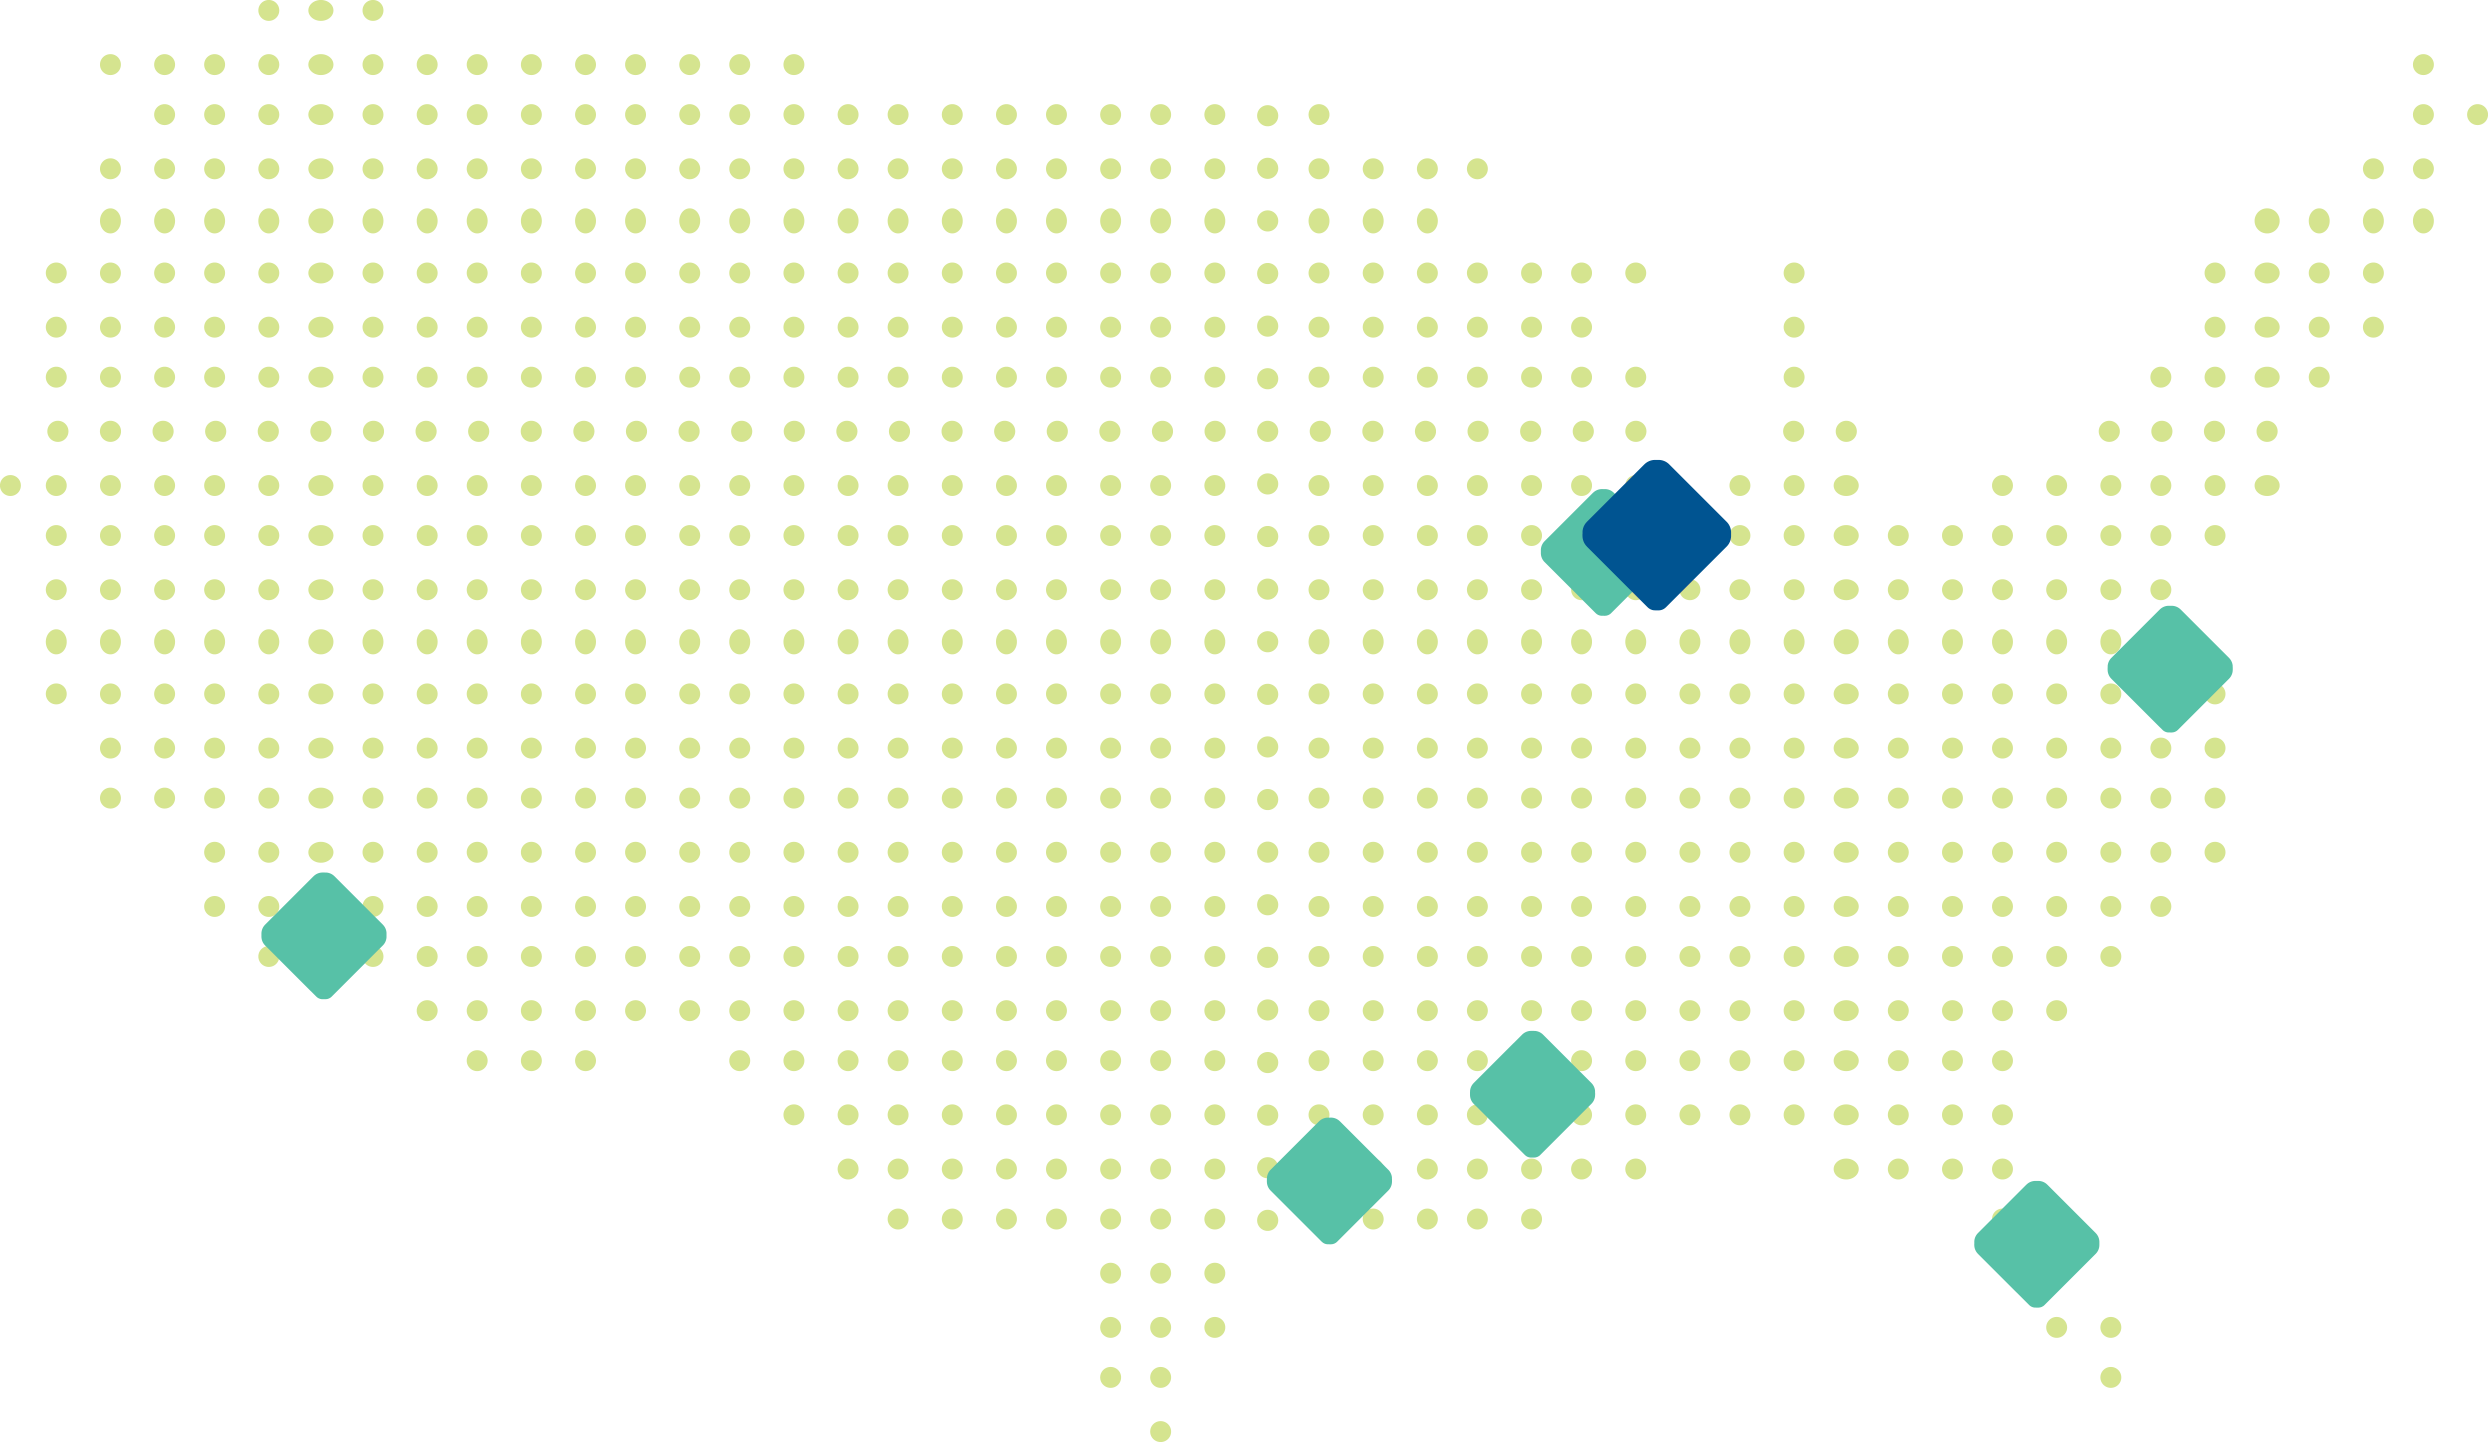 map-image.png